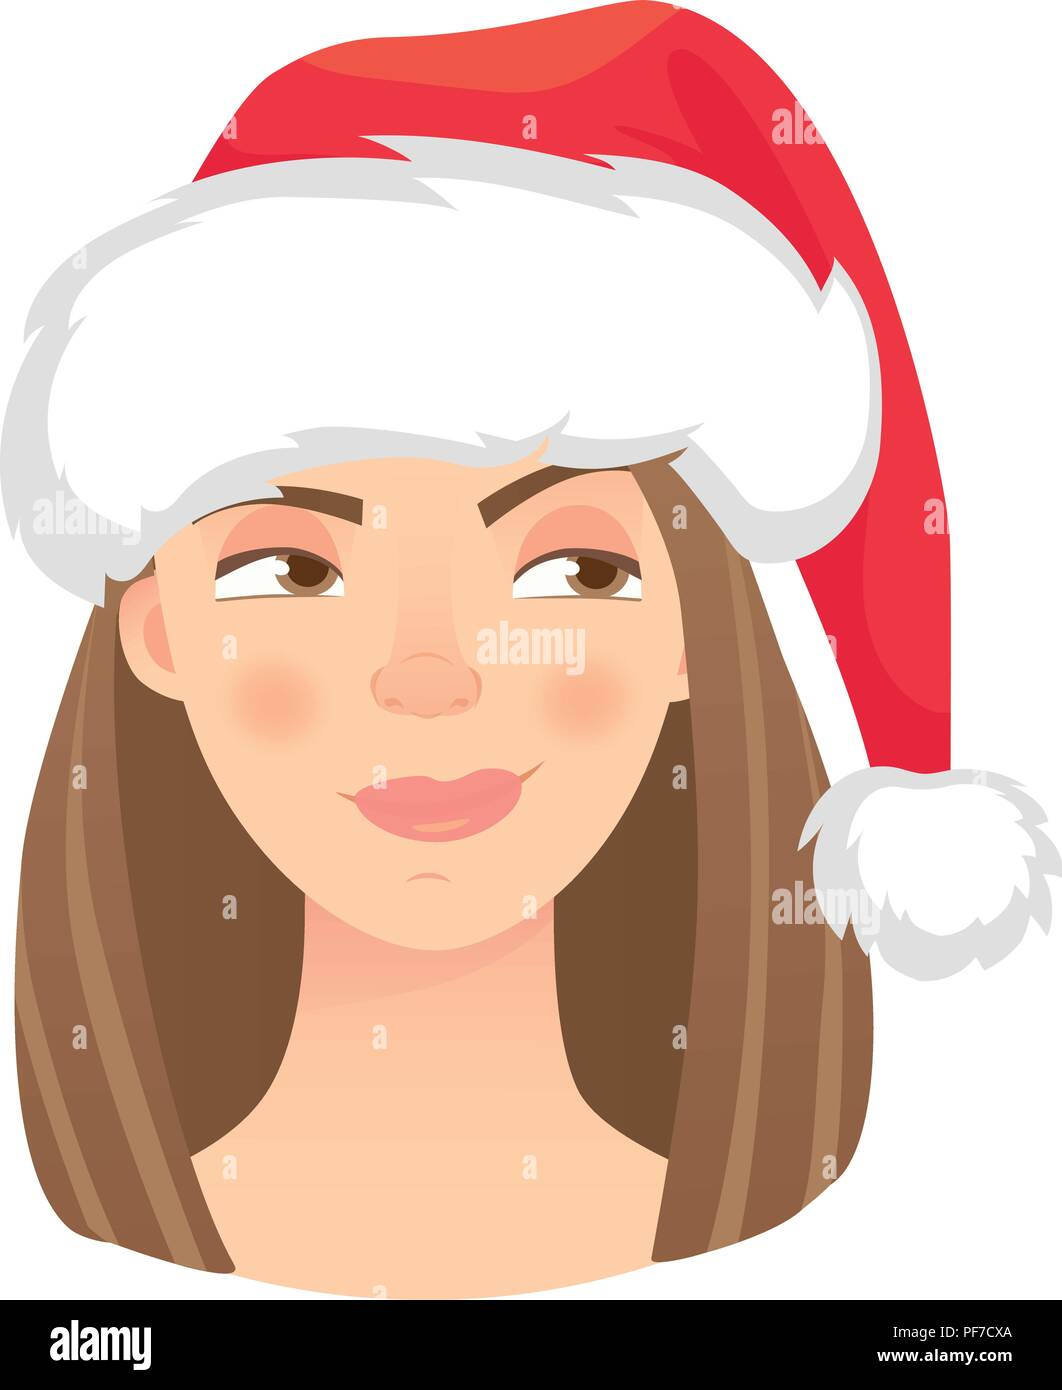 Christmas woman in santa claus hat. Emotions of woman face. Facial expression vector illustration - Stock Vector